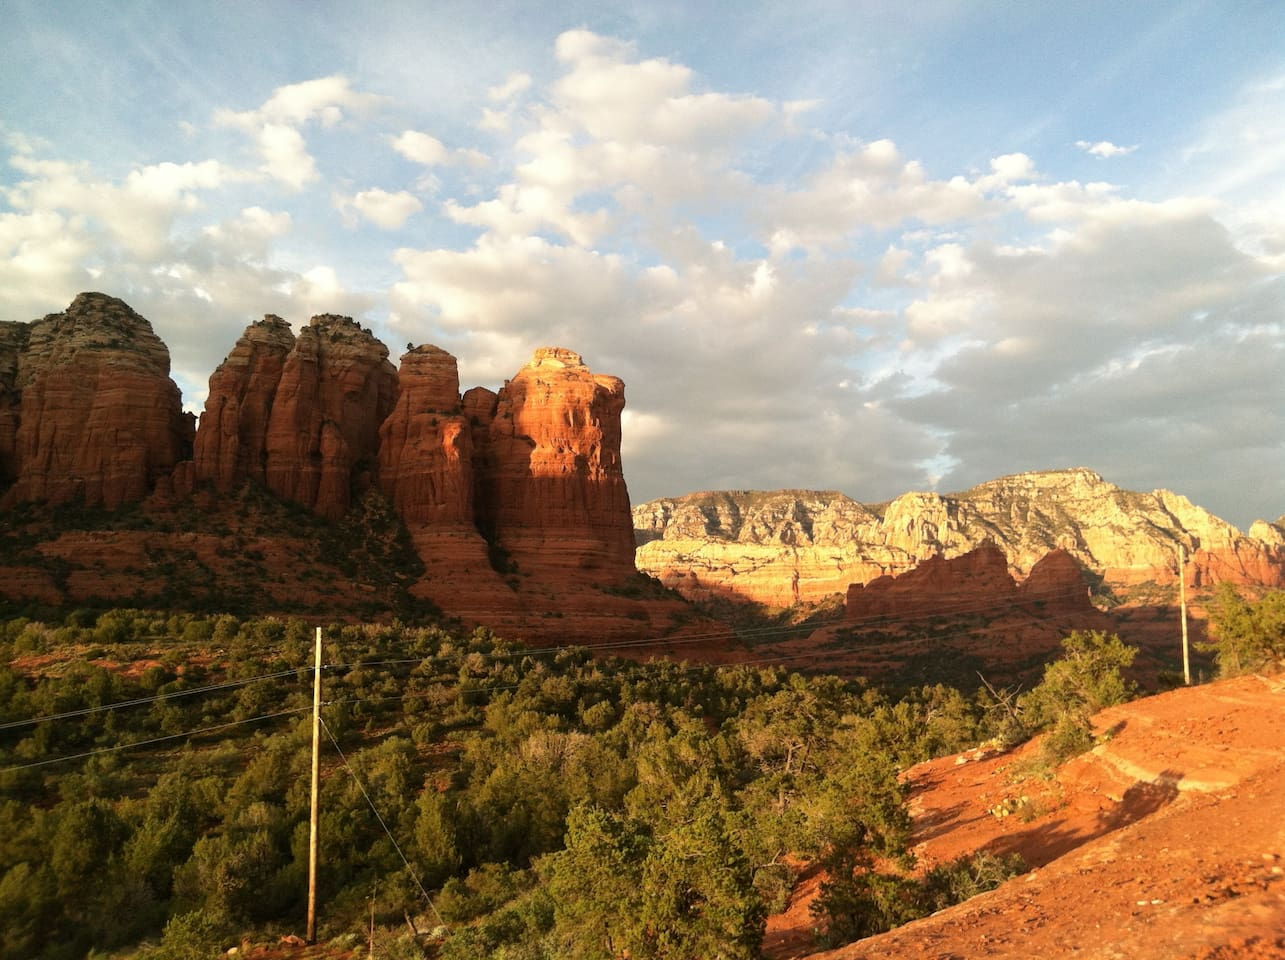 Just a minute away and you are in the red rocks